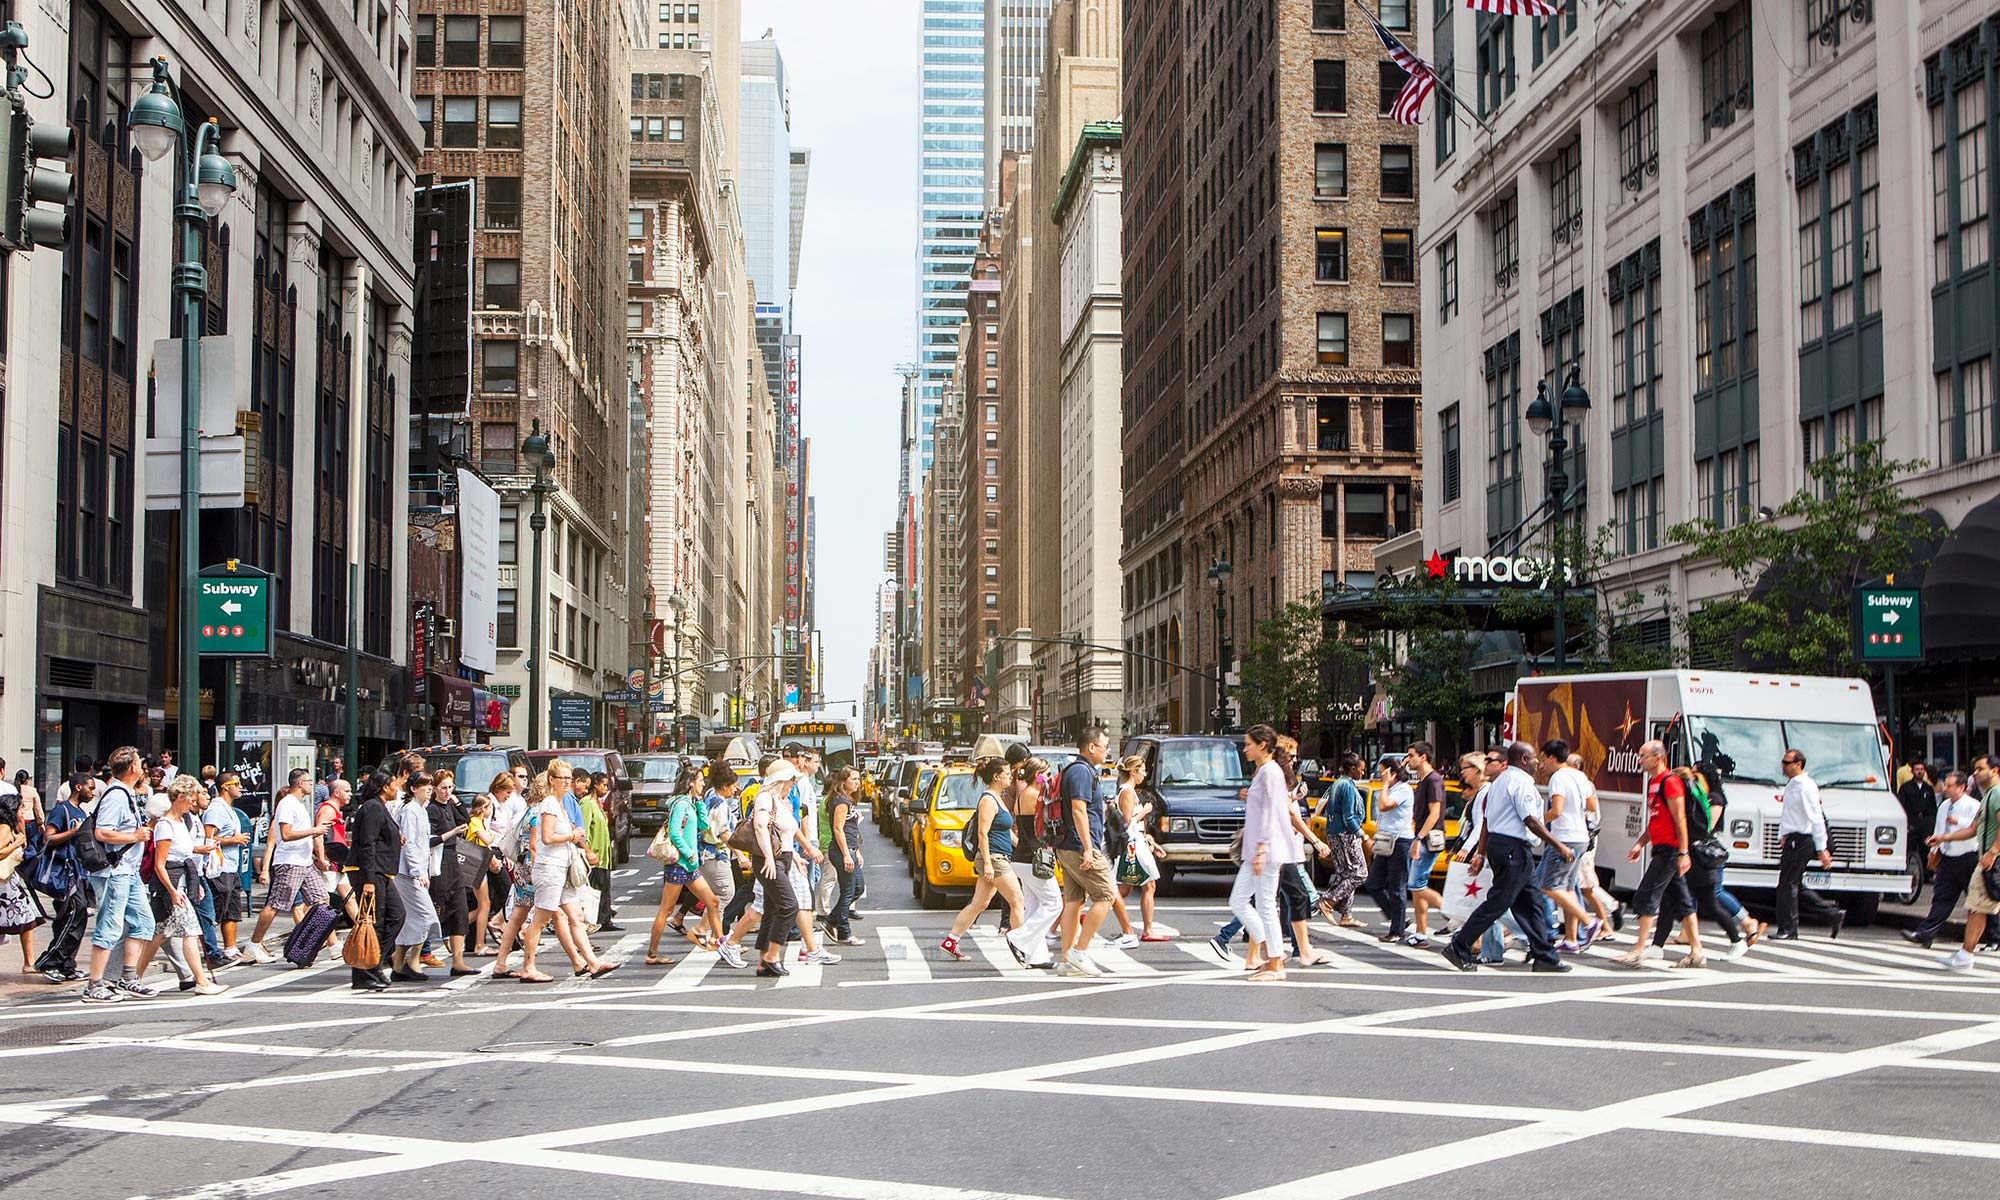 A large group of pedestrians crossing in front of a row of cars at a New York City crosswalk.